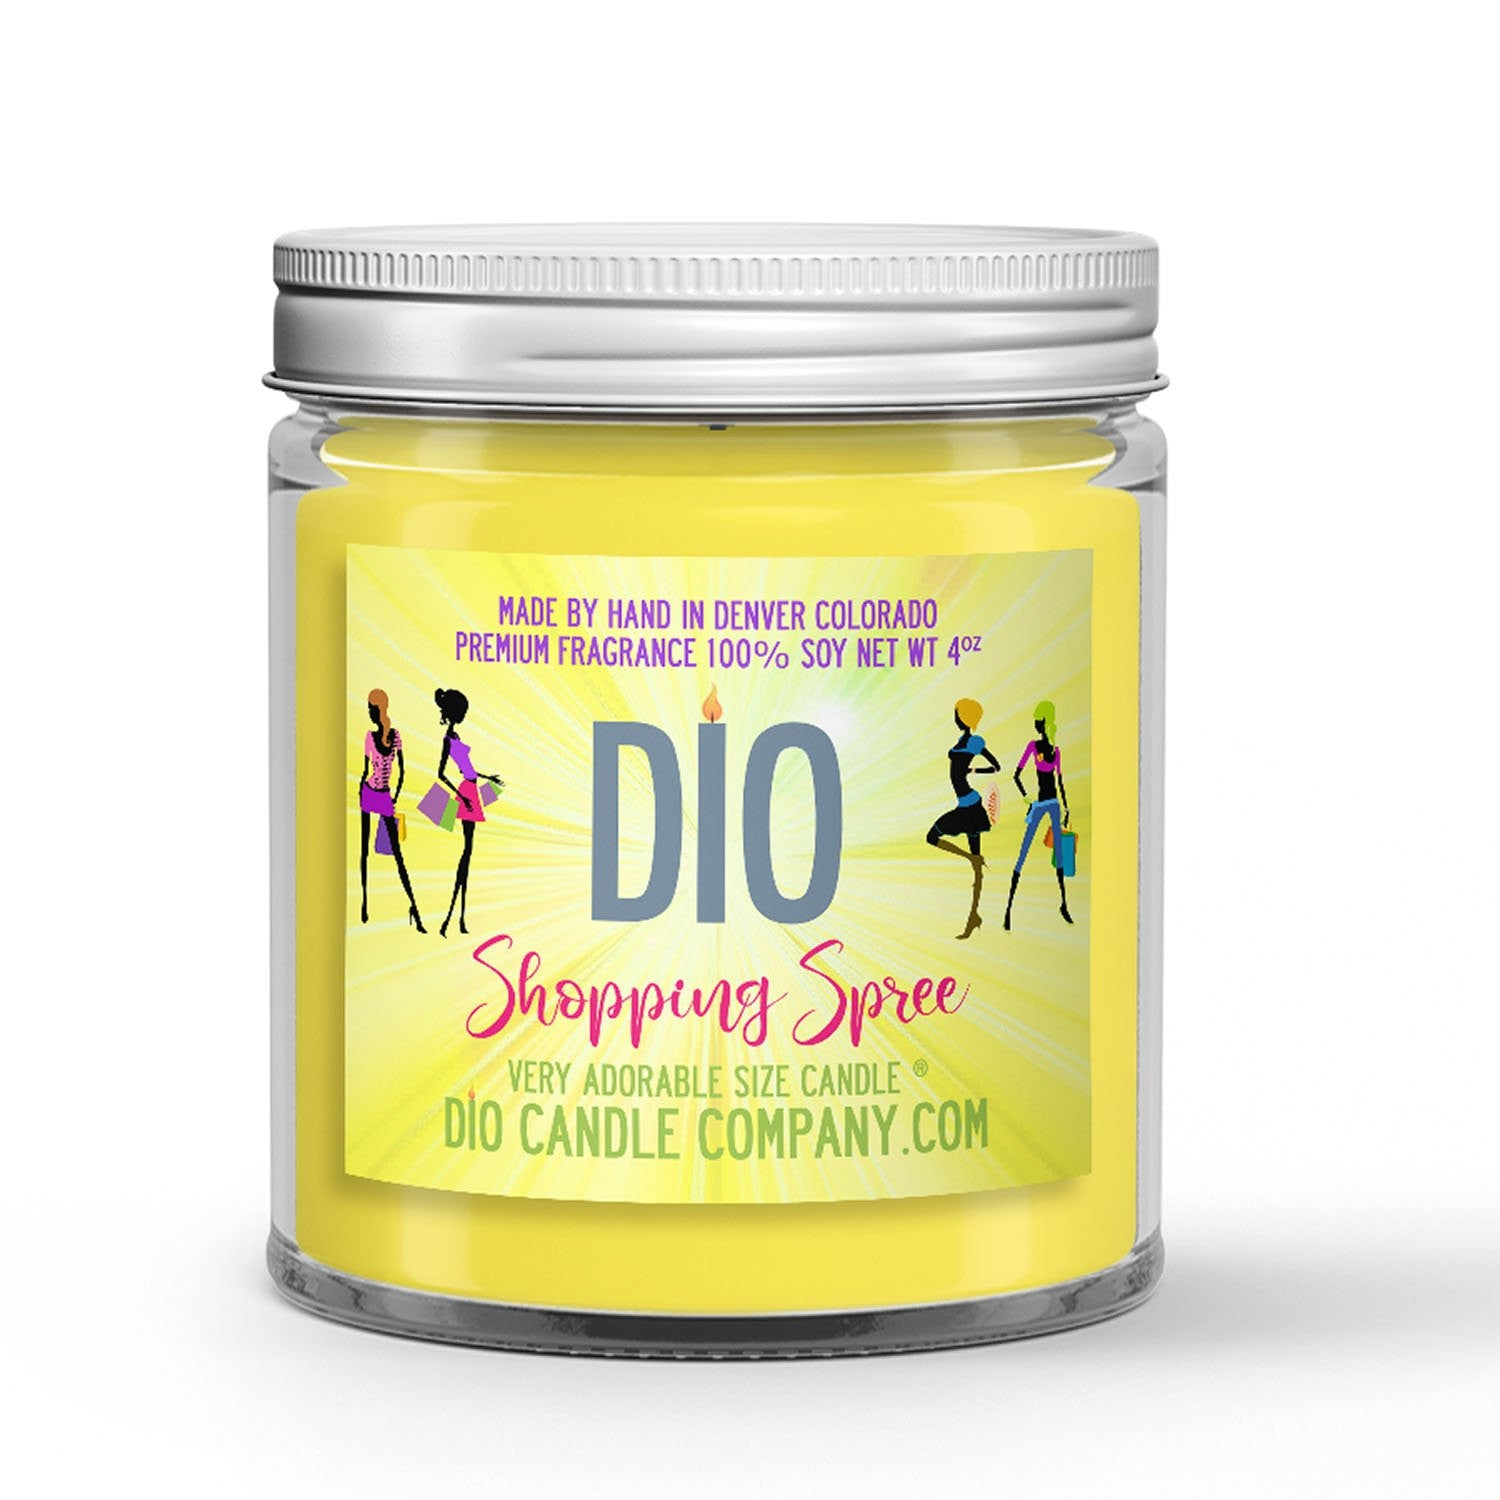 Shopping Spree Candle CK1 Type - New Blouse Scented - Dio Candle Company